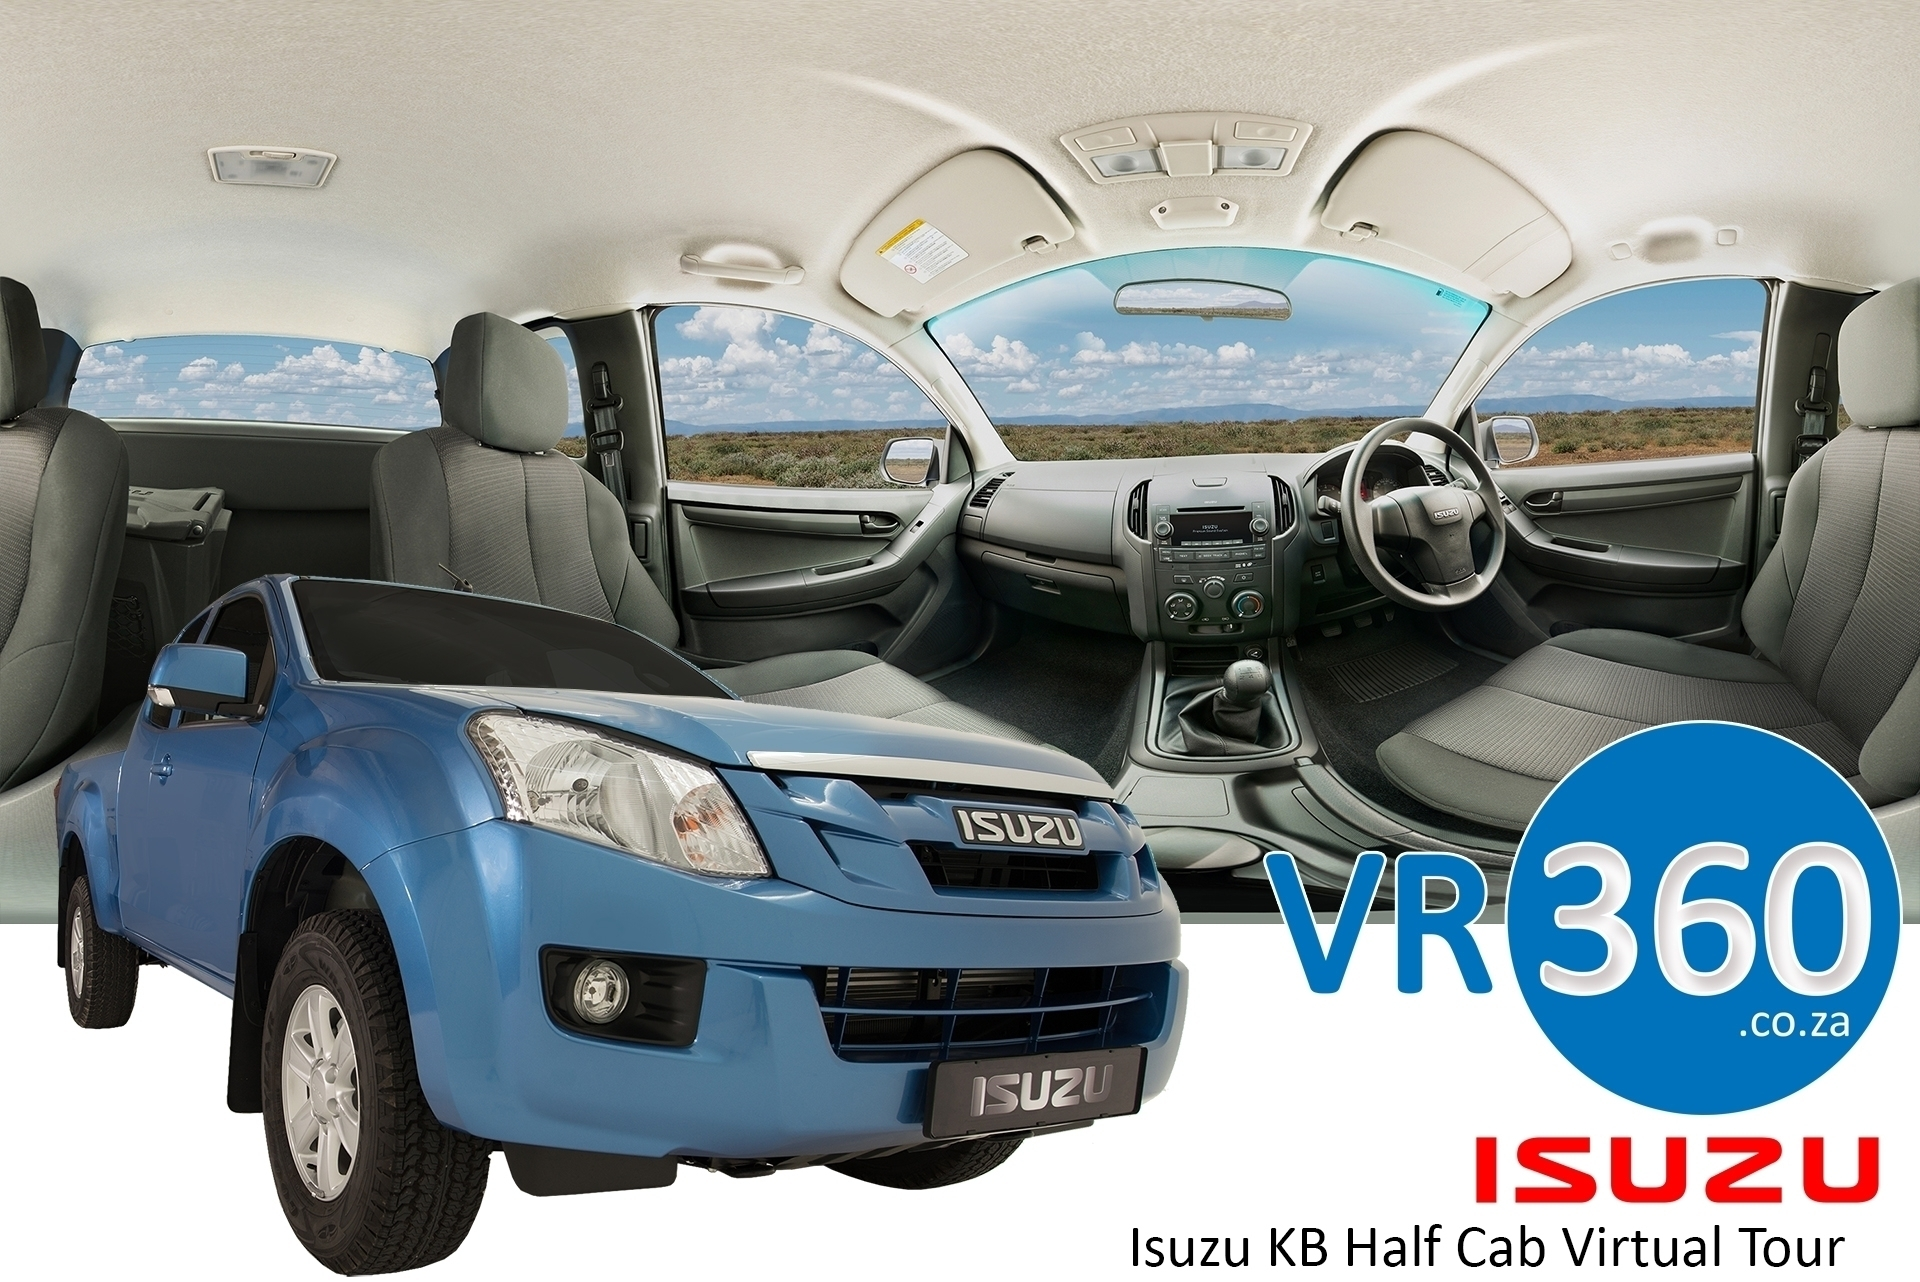 isuzu-kb-half-cab-virtual-tour